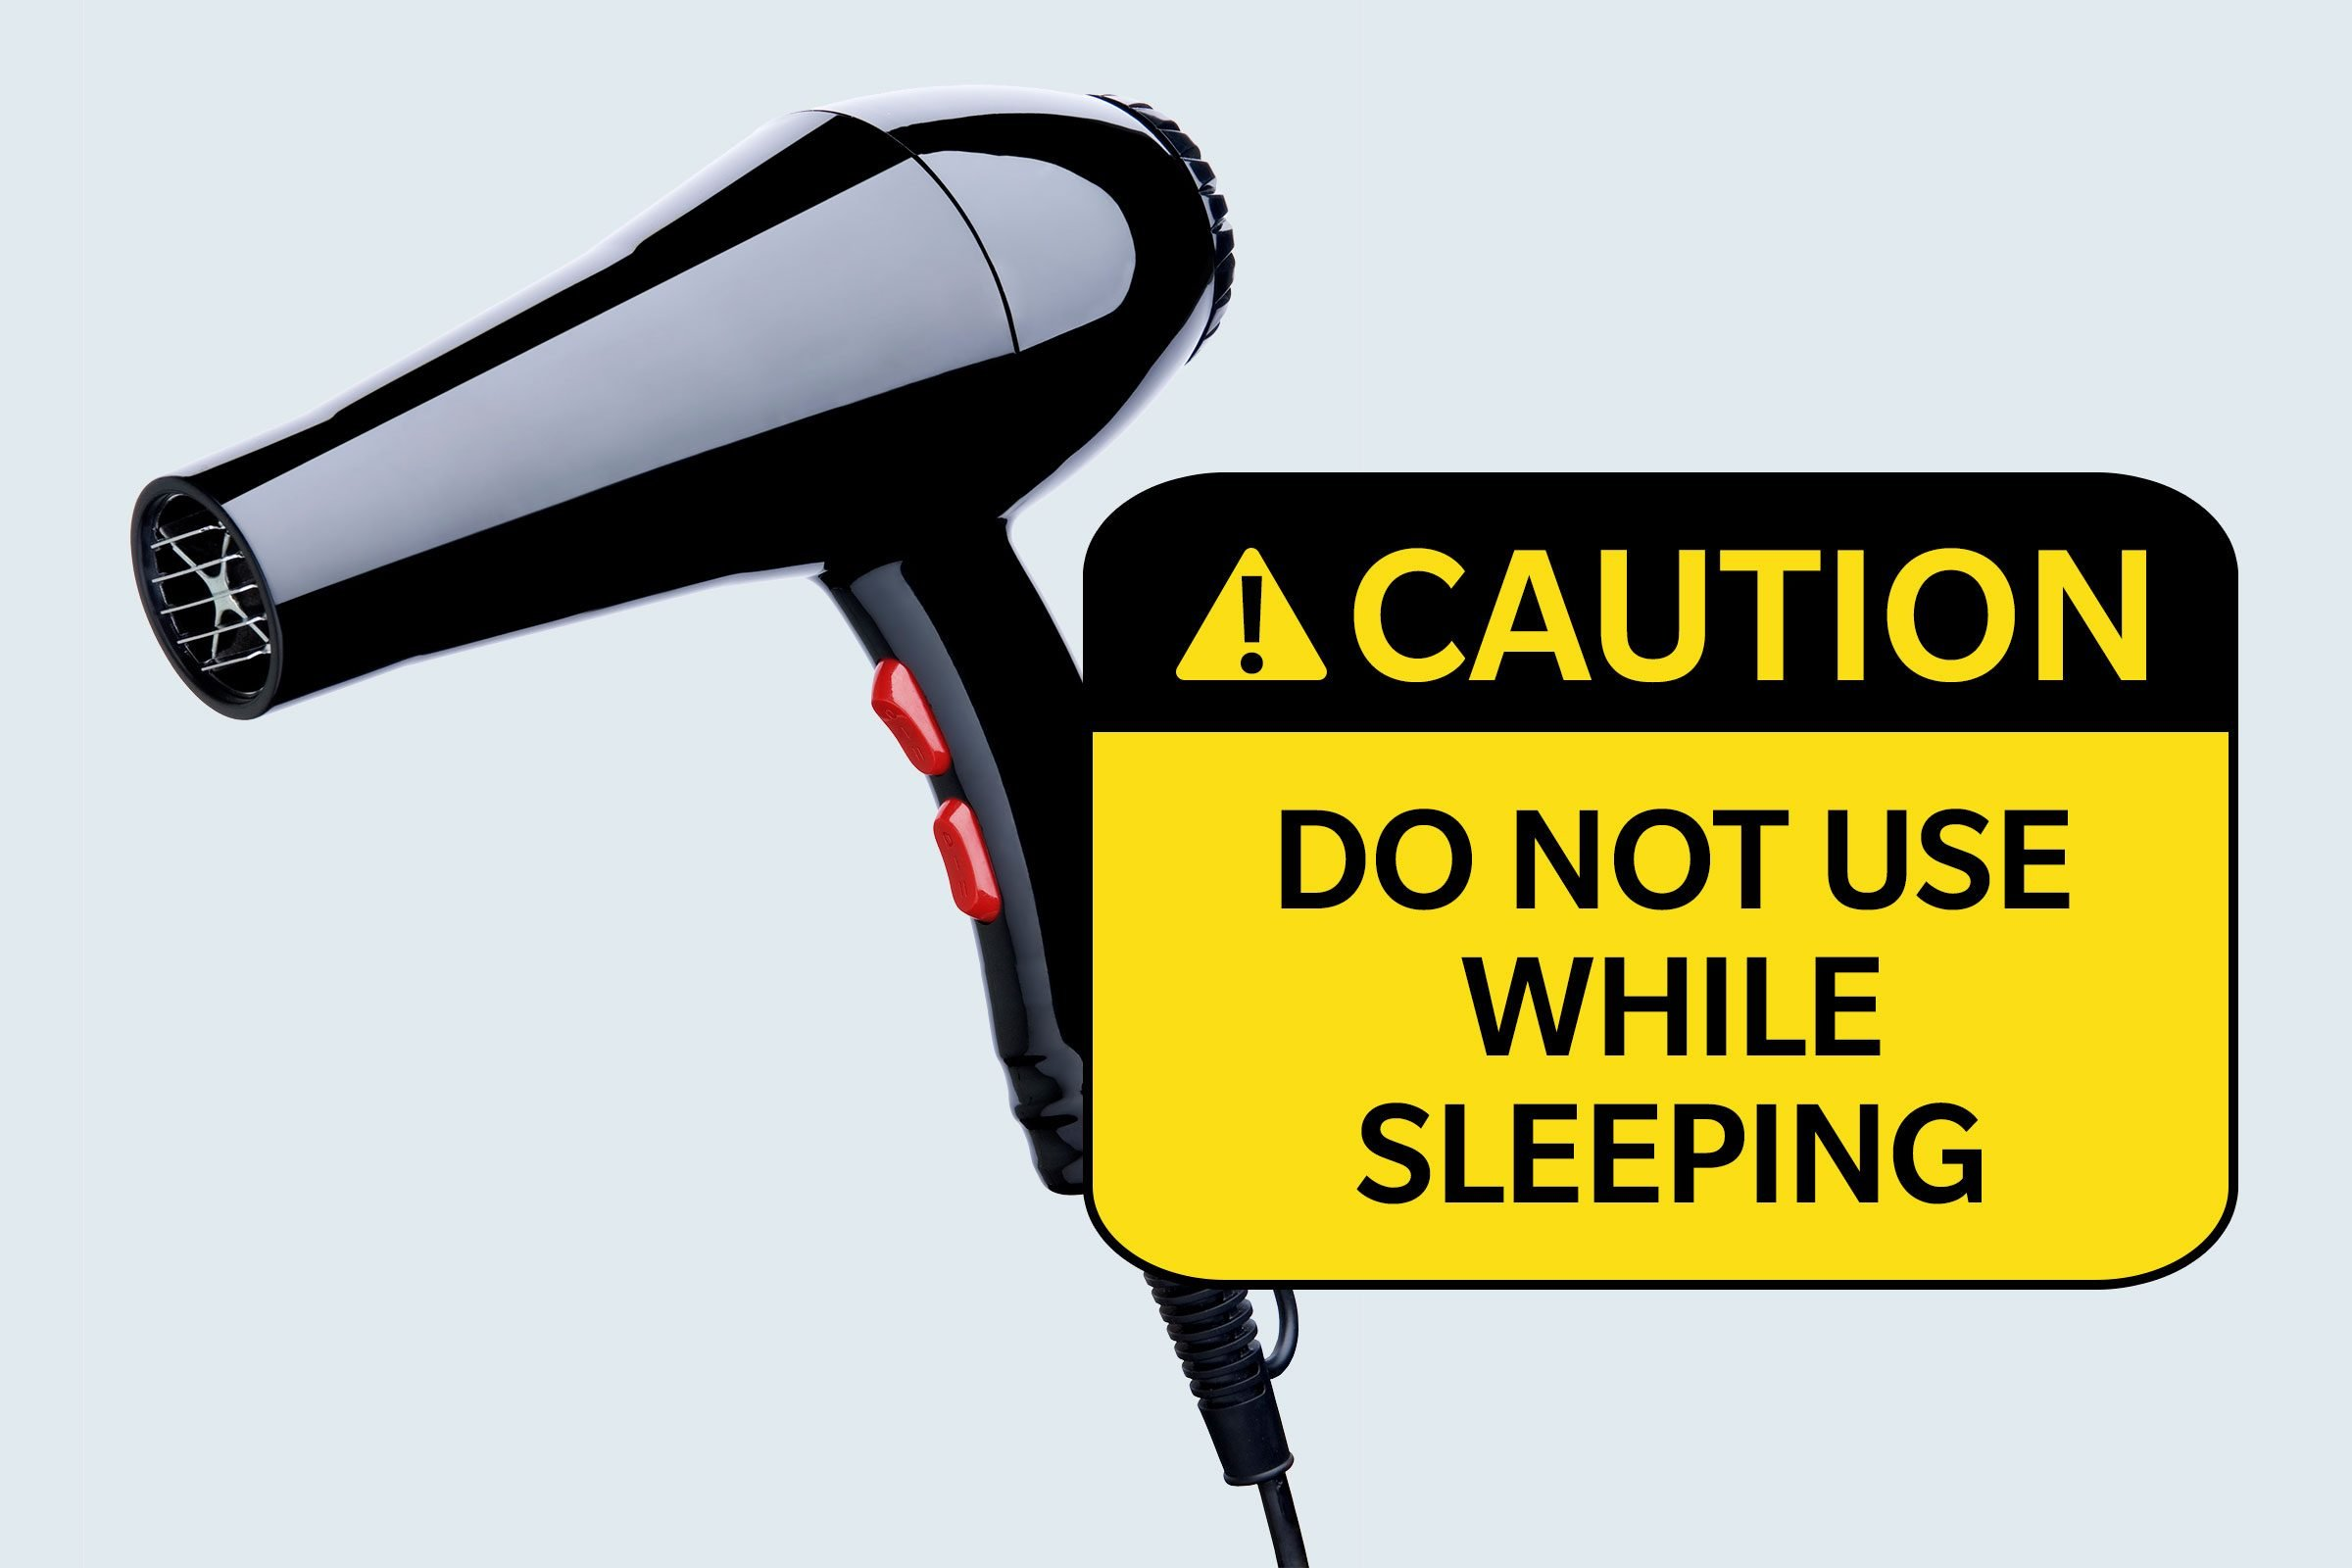 hairdryer. caution: do not use while sleeping